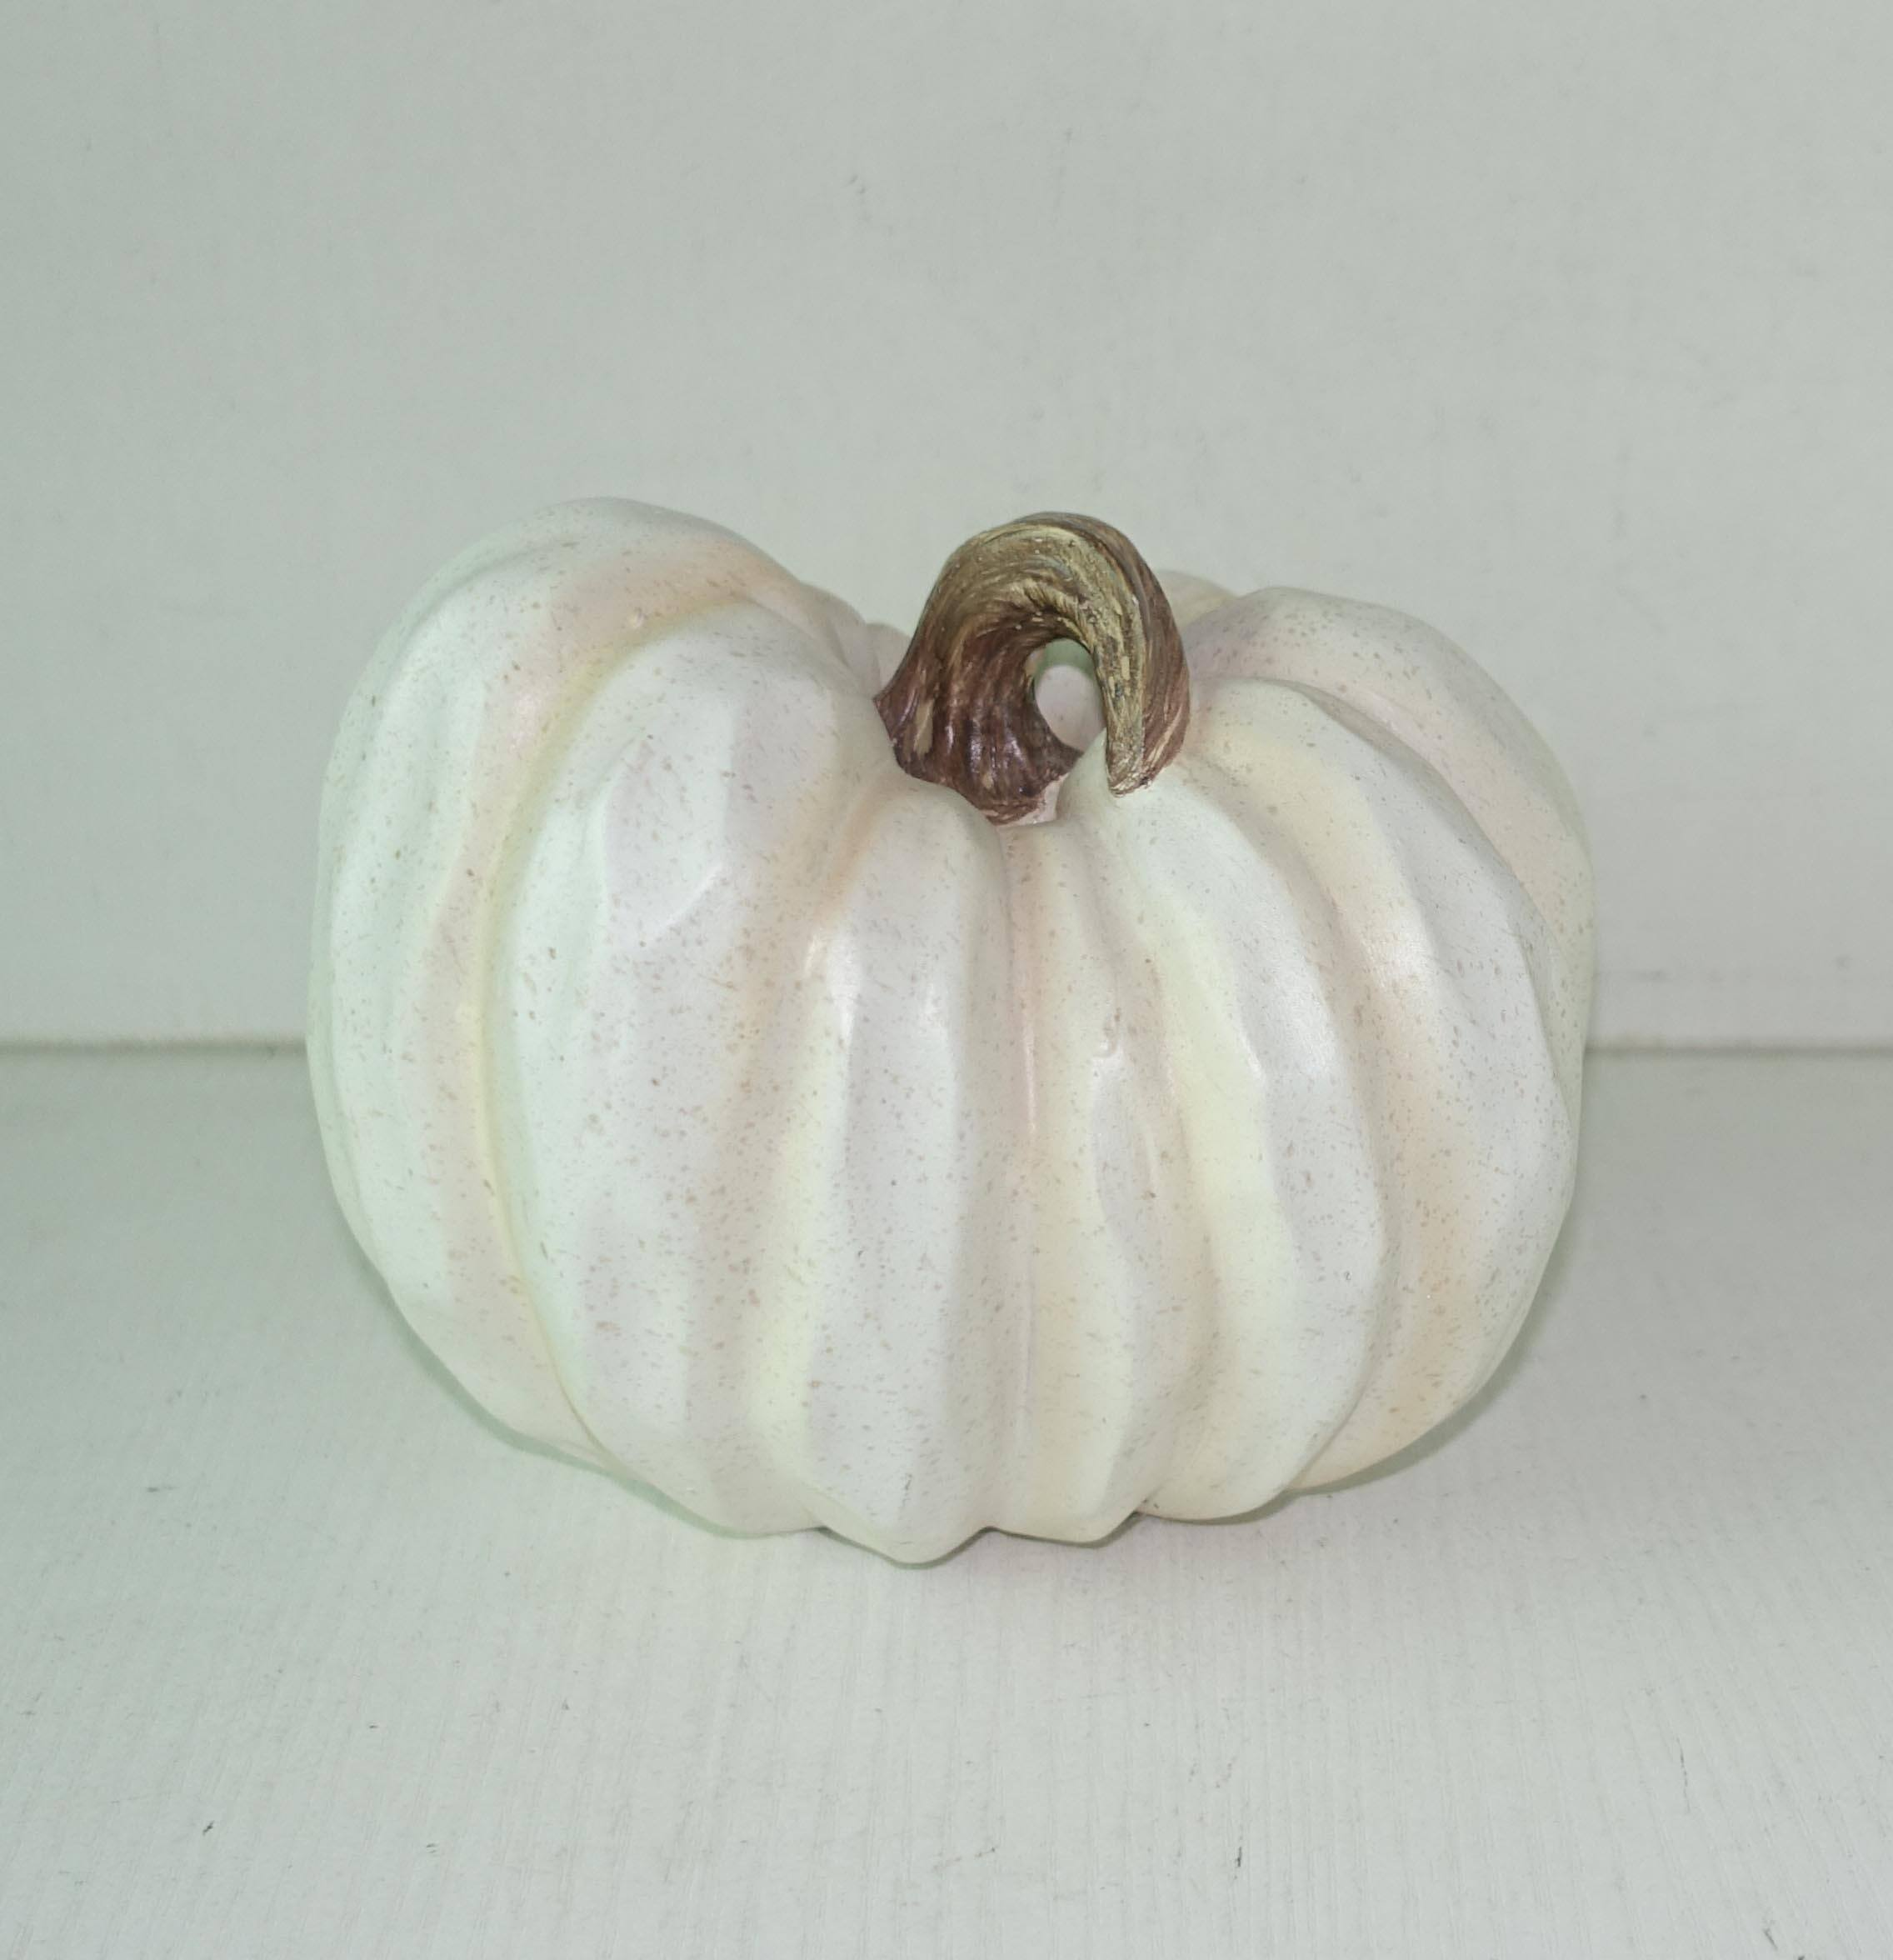 6 Inch Tabletop Decoration Resin Craft White Fall Pumpkin